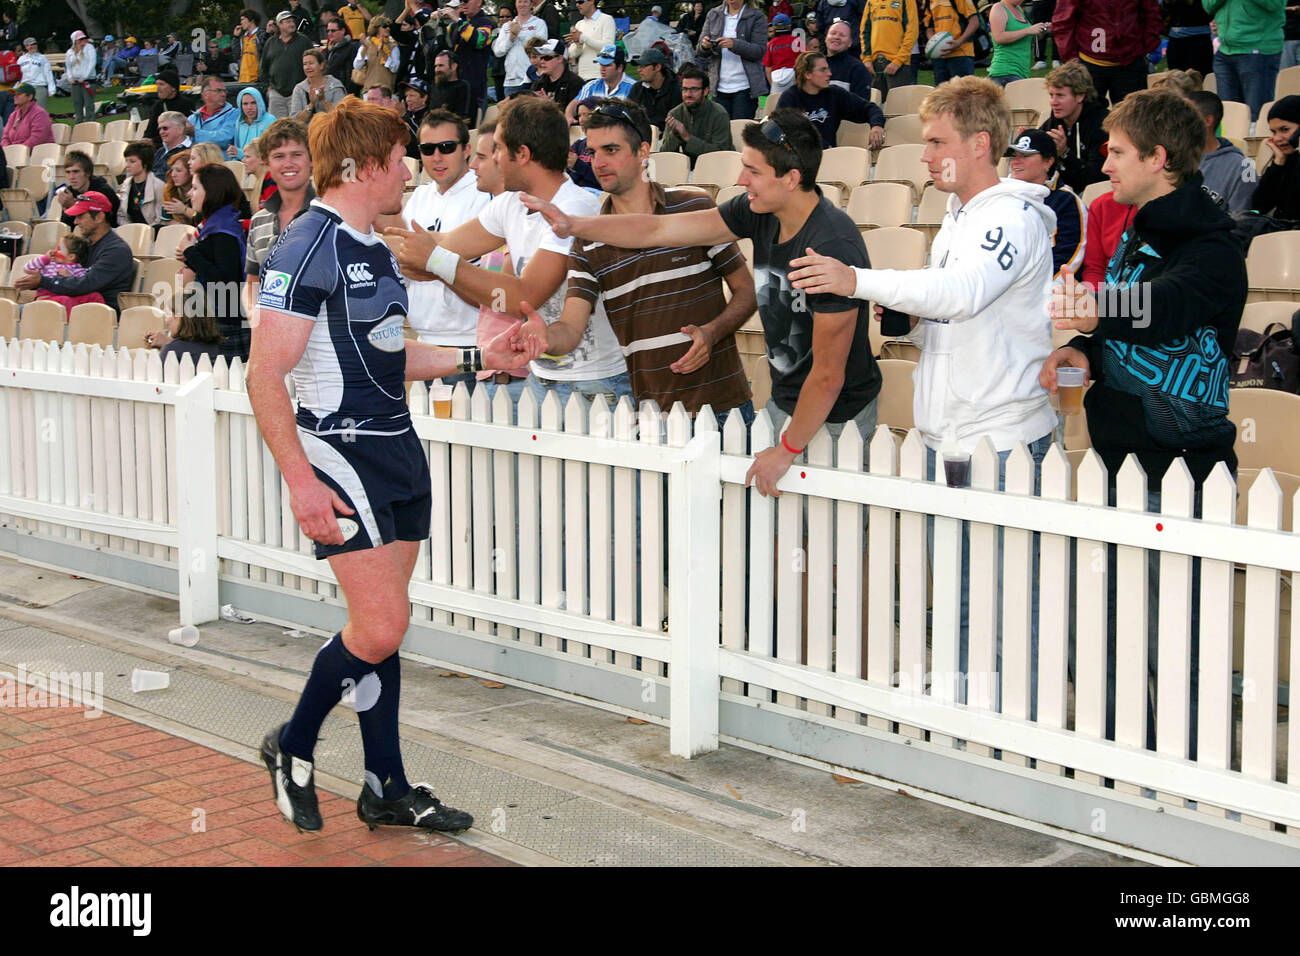 Rugby Union - IRB Rugby World Cup Sevens 2009 - Sheild Final - USA v Scotland - The Sevens - Stock Image